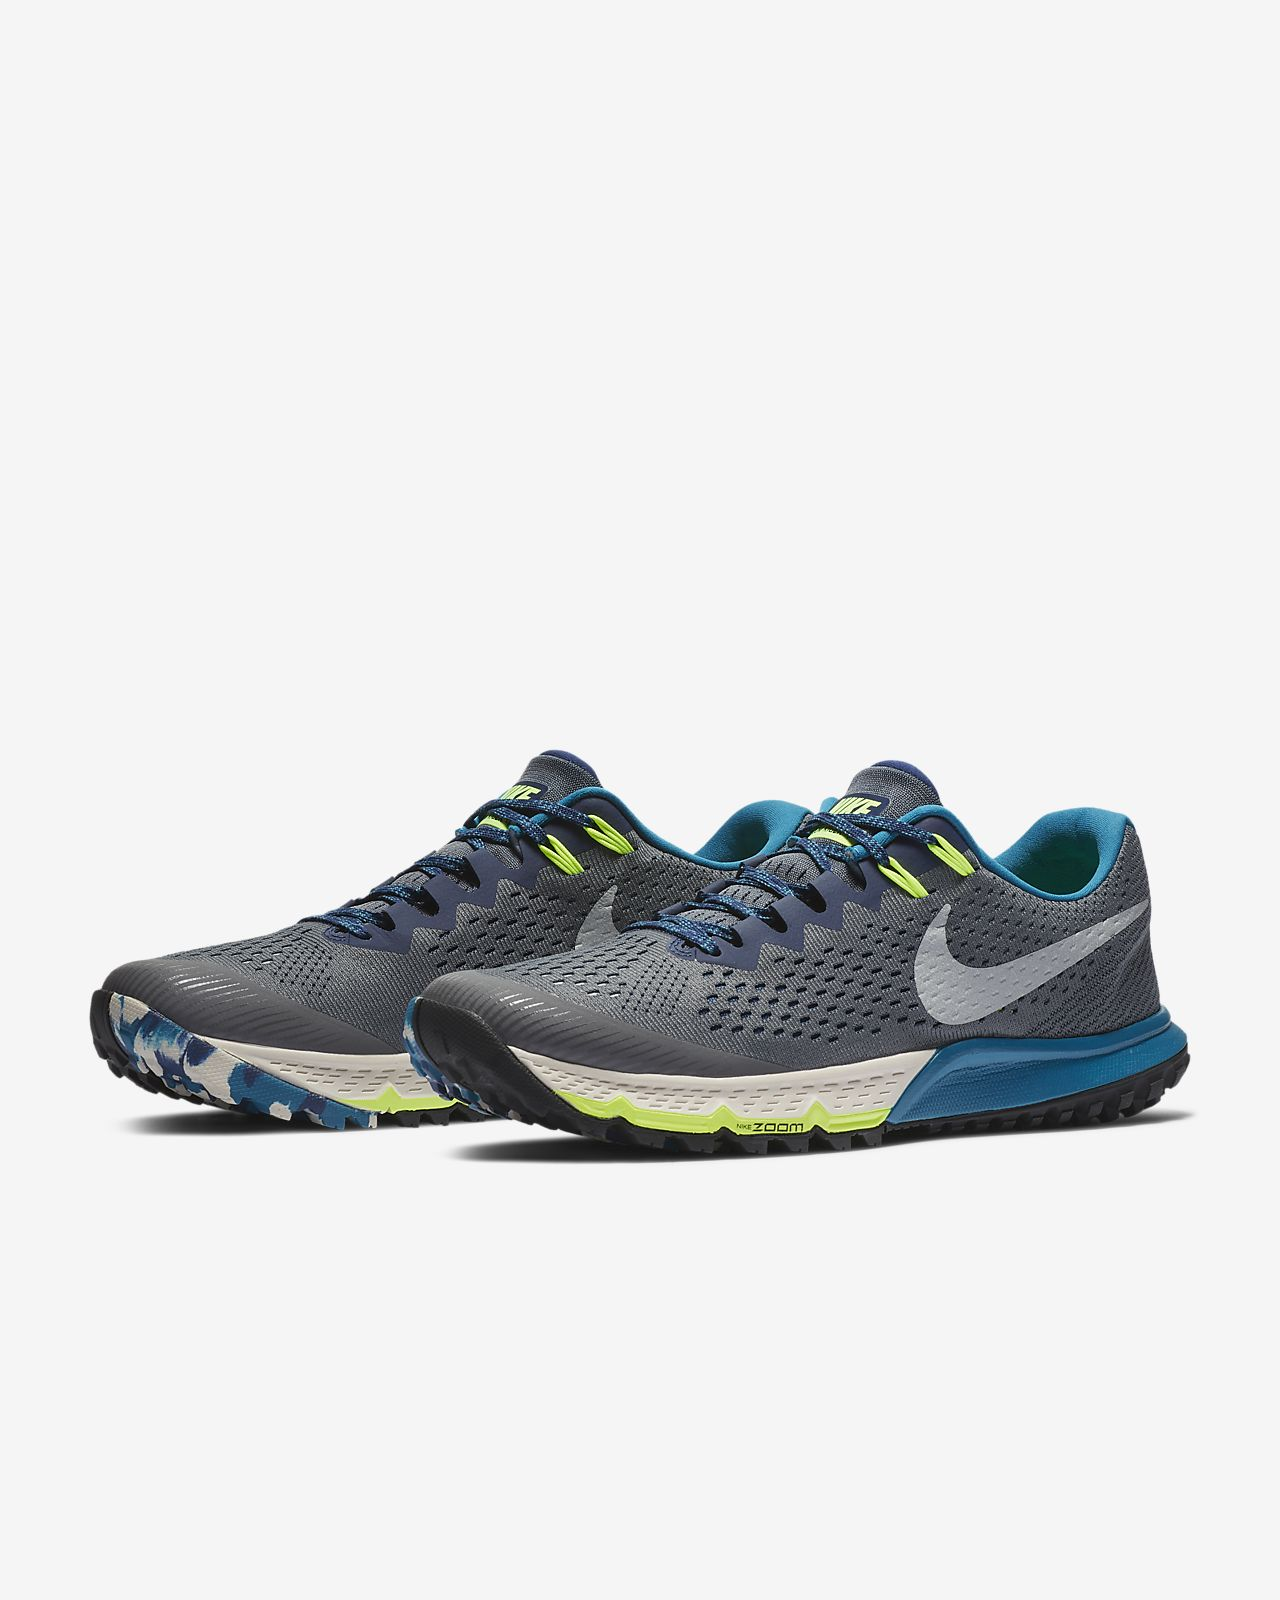 reputable site 51794 1f34a ... Chaussure de running Nike Air Zoom Terra Kiger 4 pour Homme